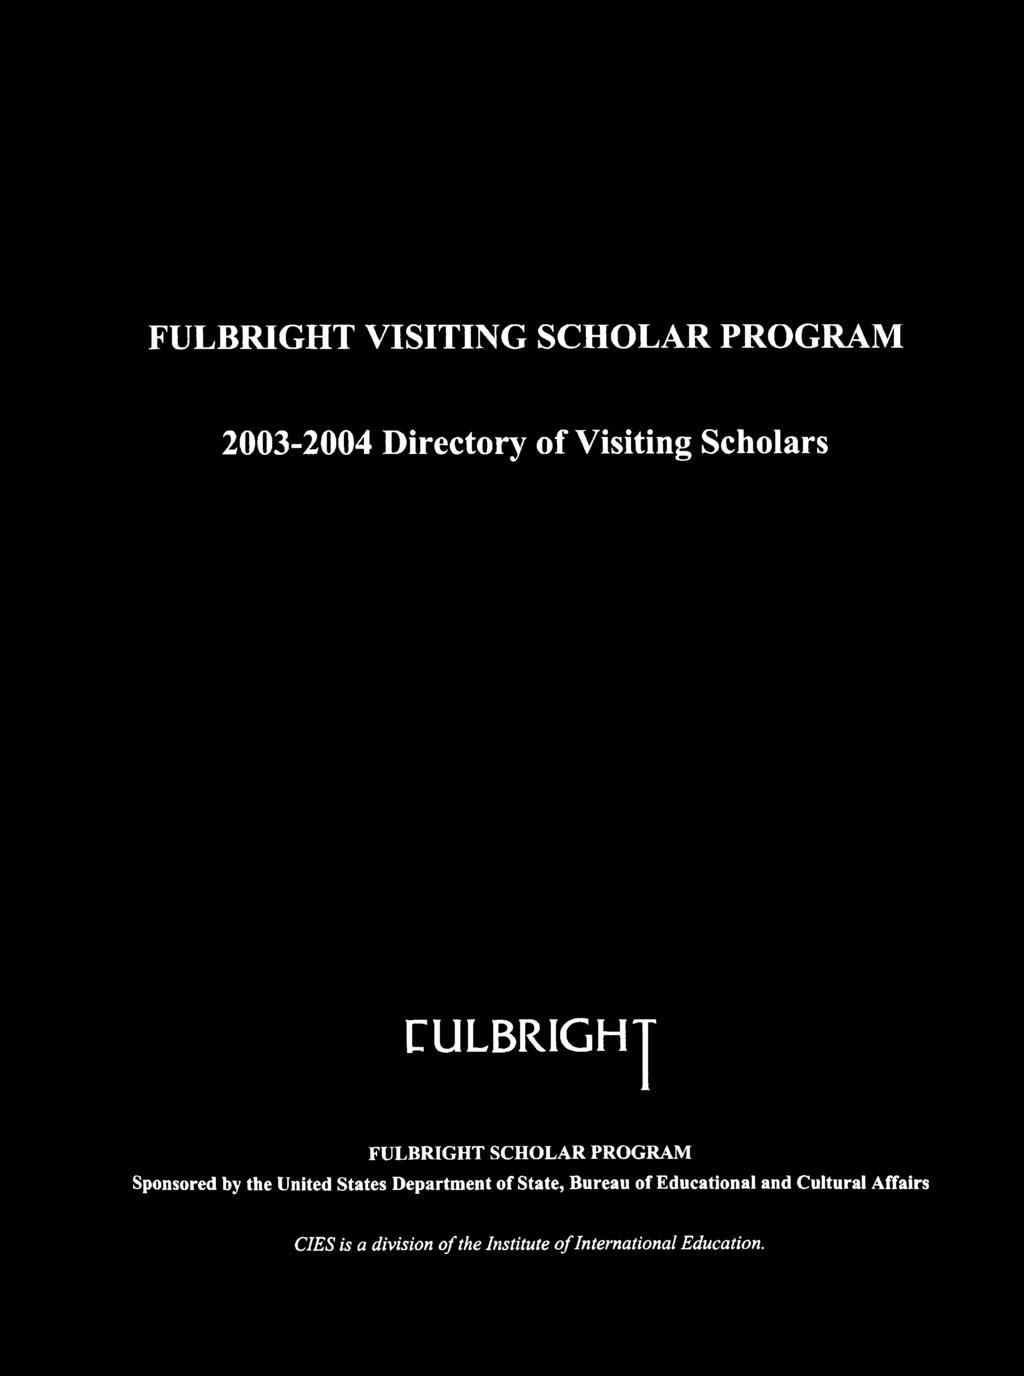 FULBRIGHT VISITIN G SCHOLAR PROGRAM 2003-2004 Directory o f Visiting Scholars FULBRIGHT F U LB R IG H T SC H O LAR PRO G RAM Sponsored by the U